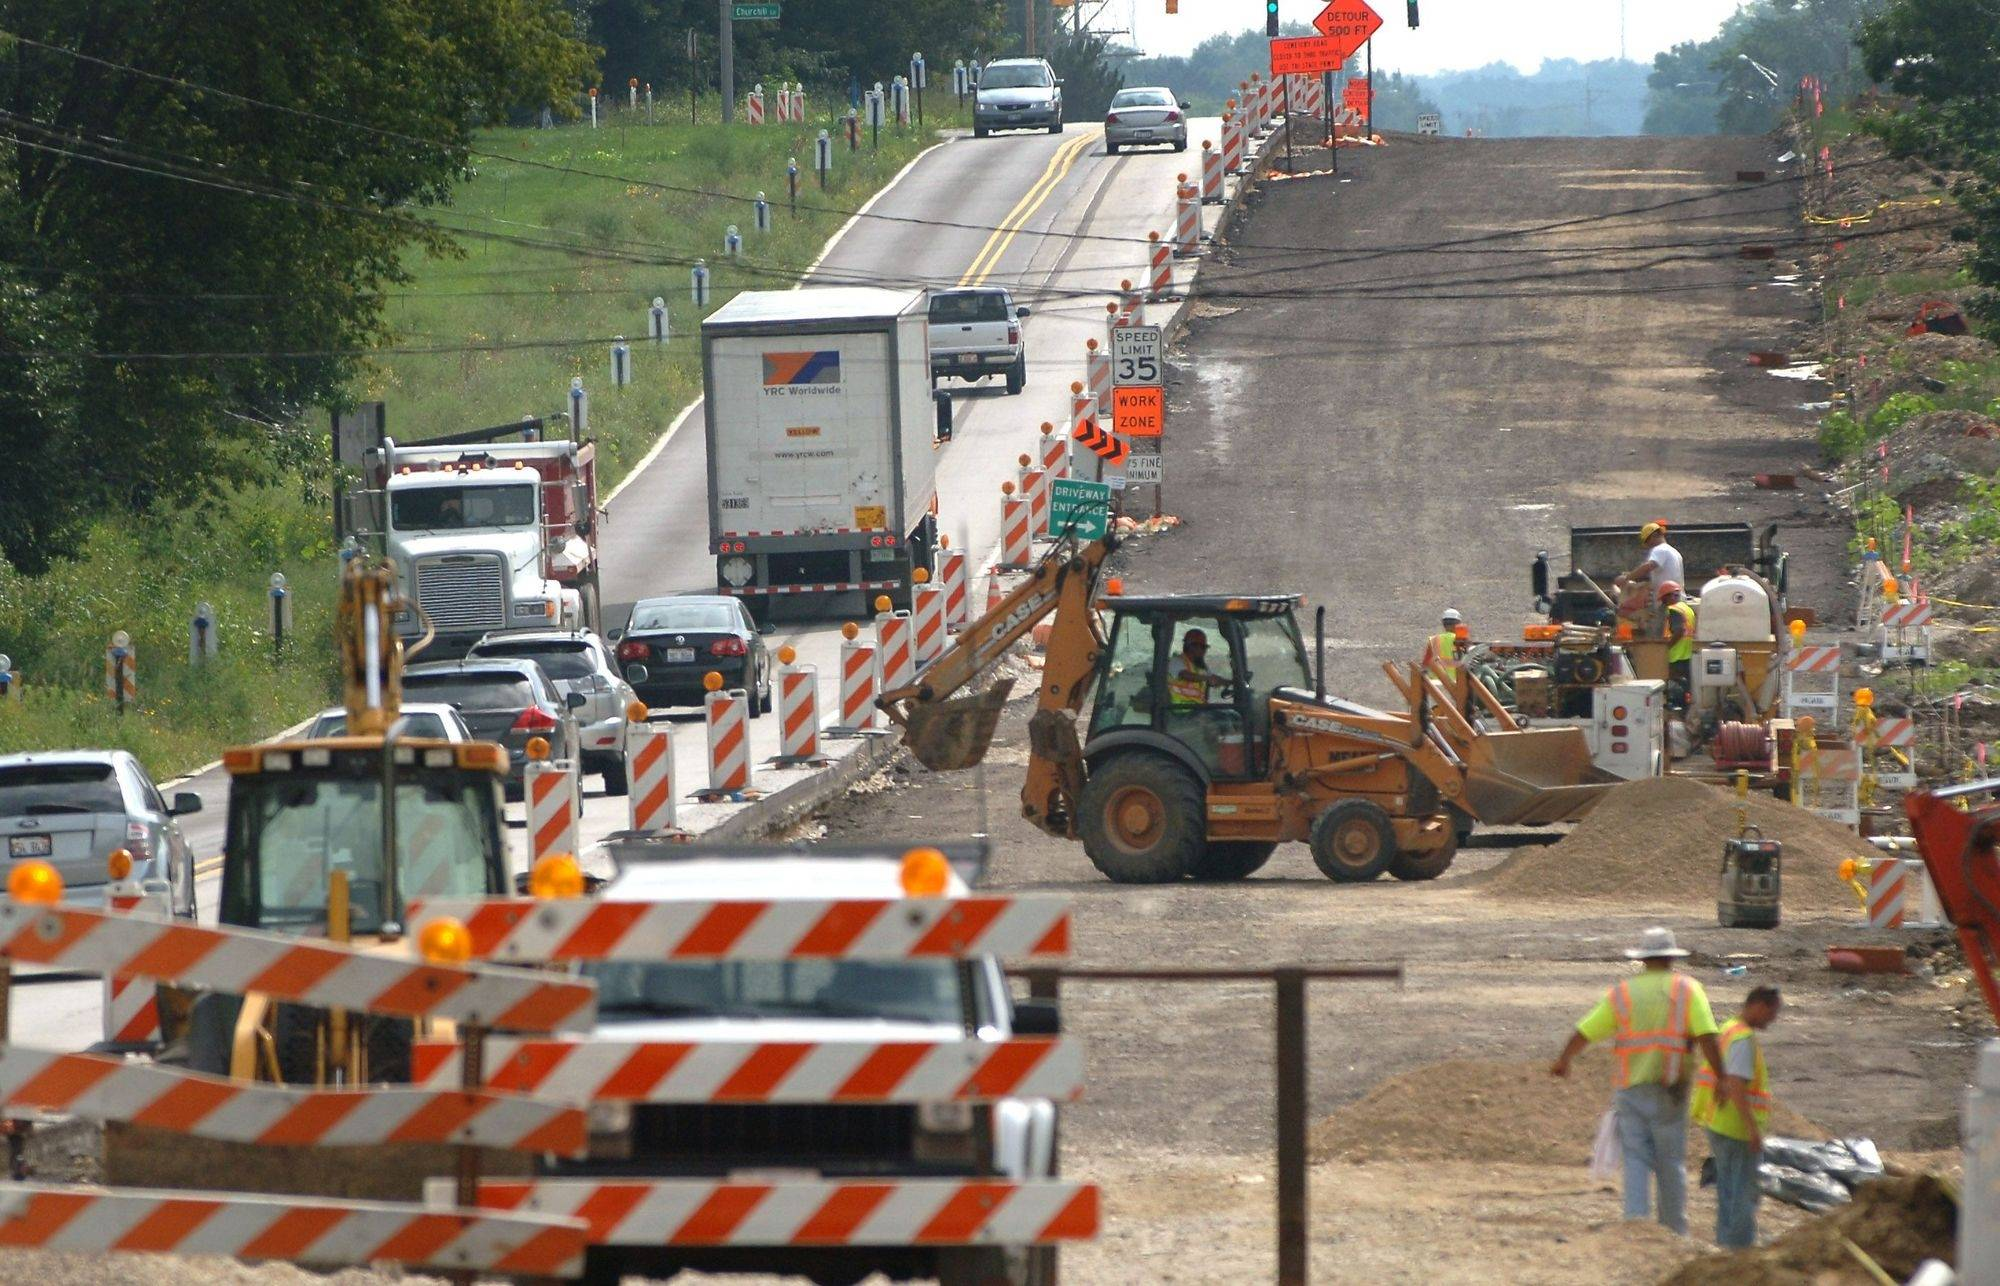 After 20 years, 'last piece' of work could start on Lake Co. road project